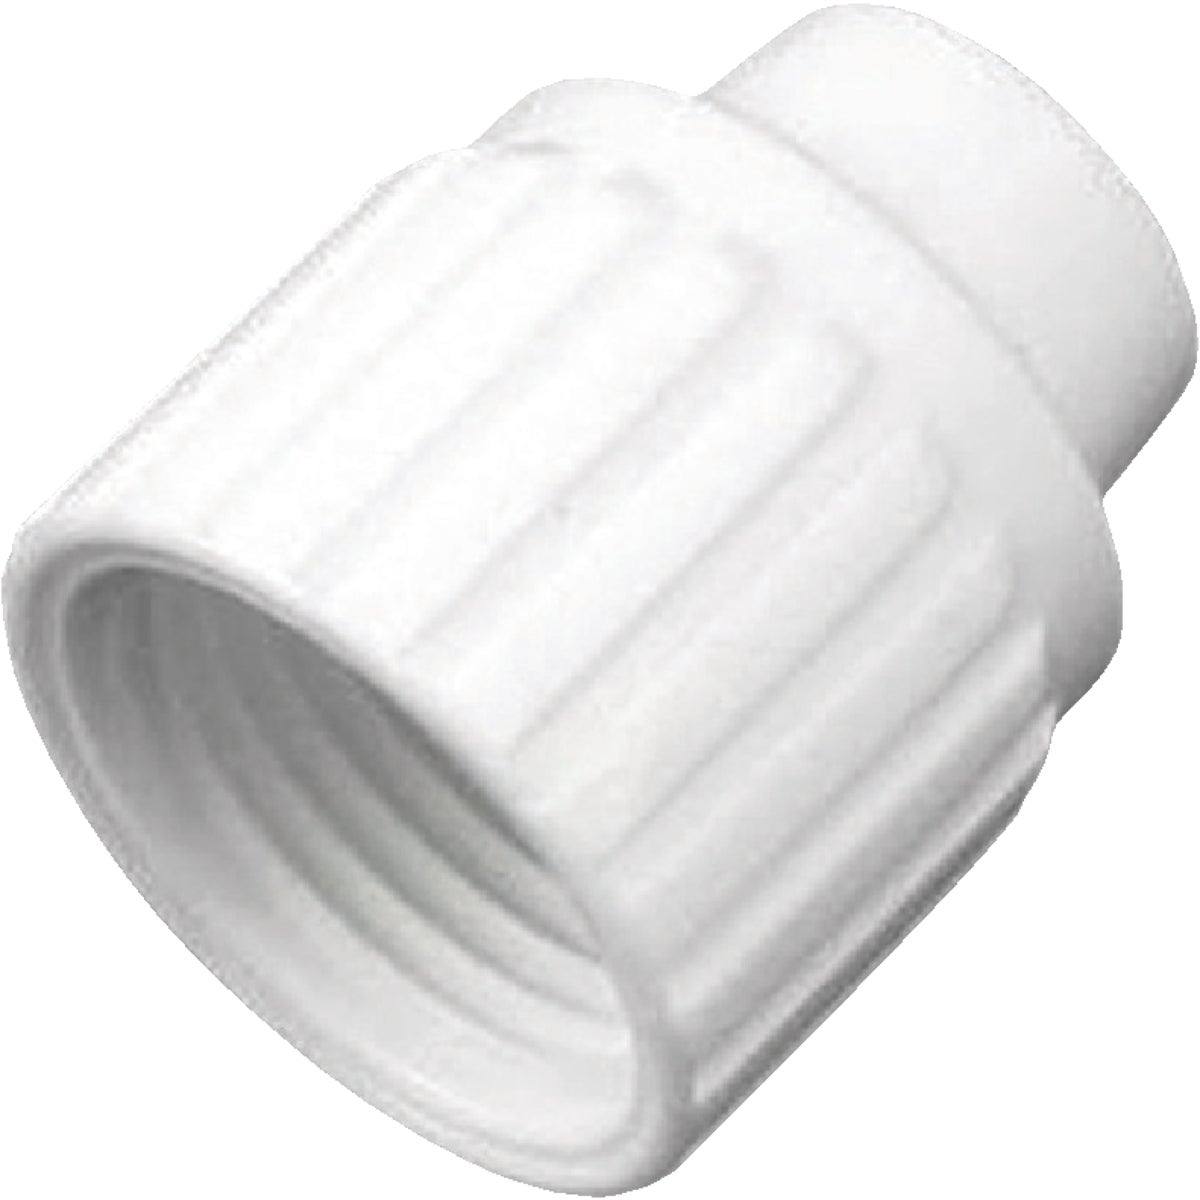 "1/2"" CAP - 16860 by Flair It West"